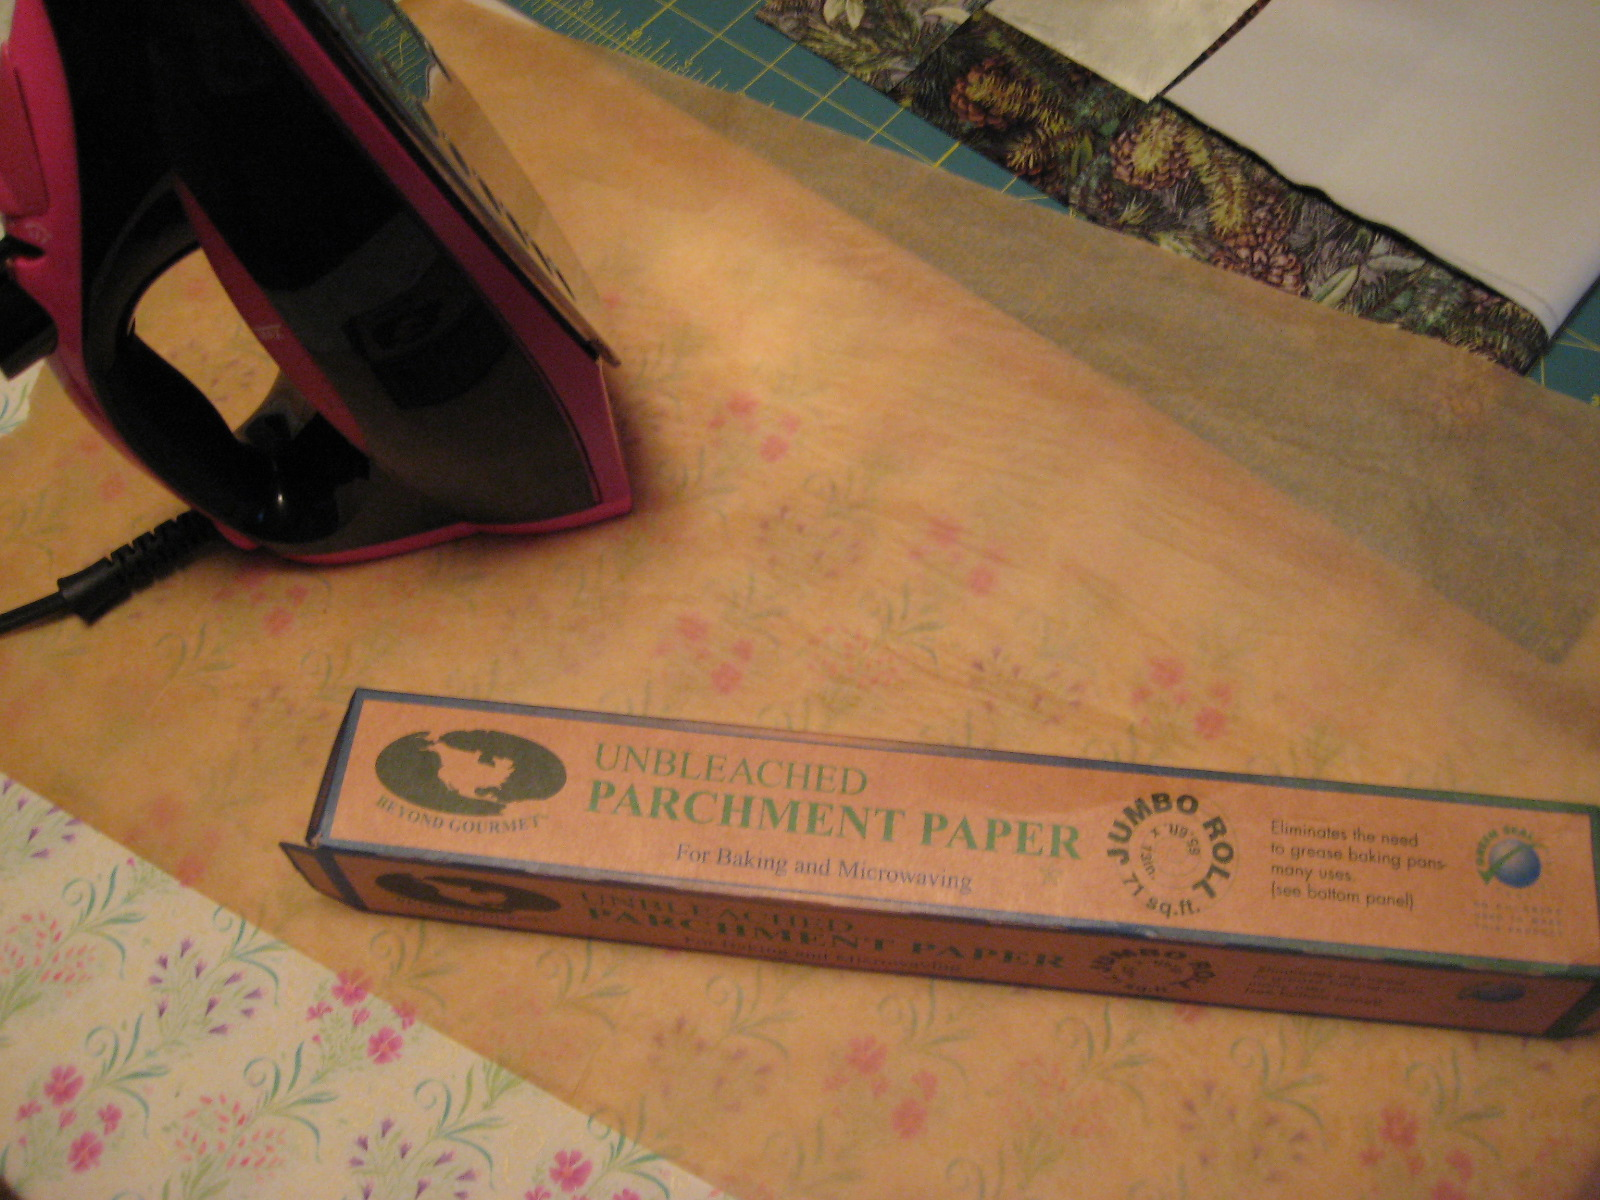 fusing photo paper instructions